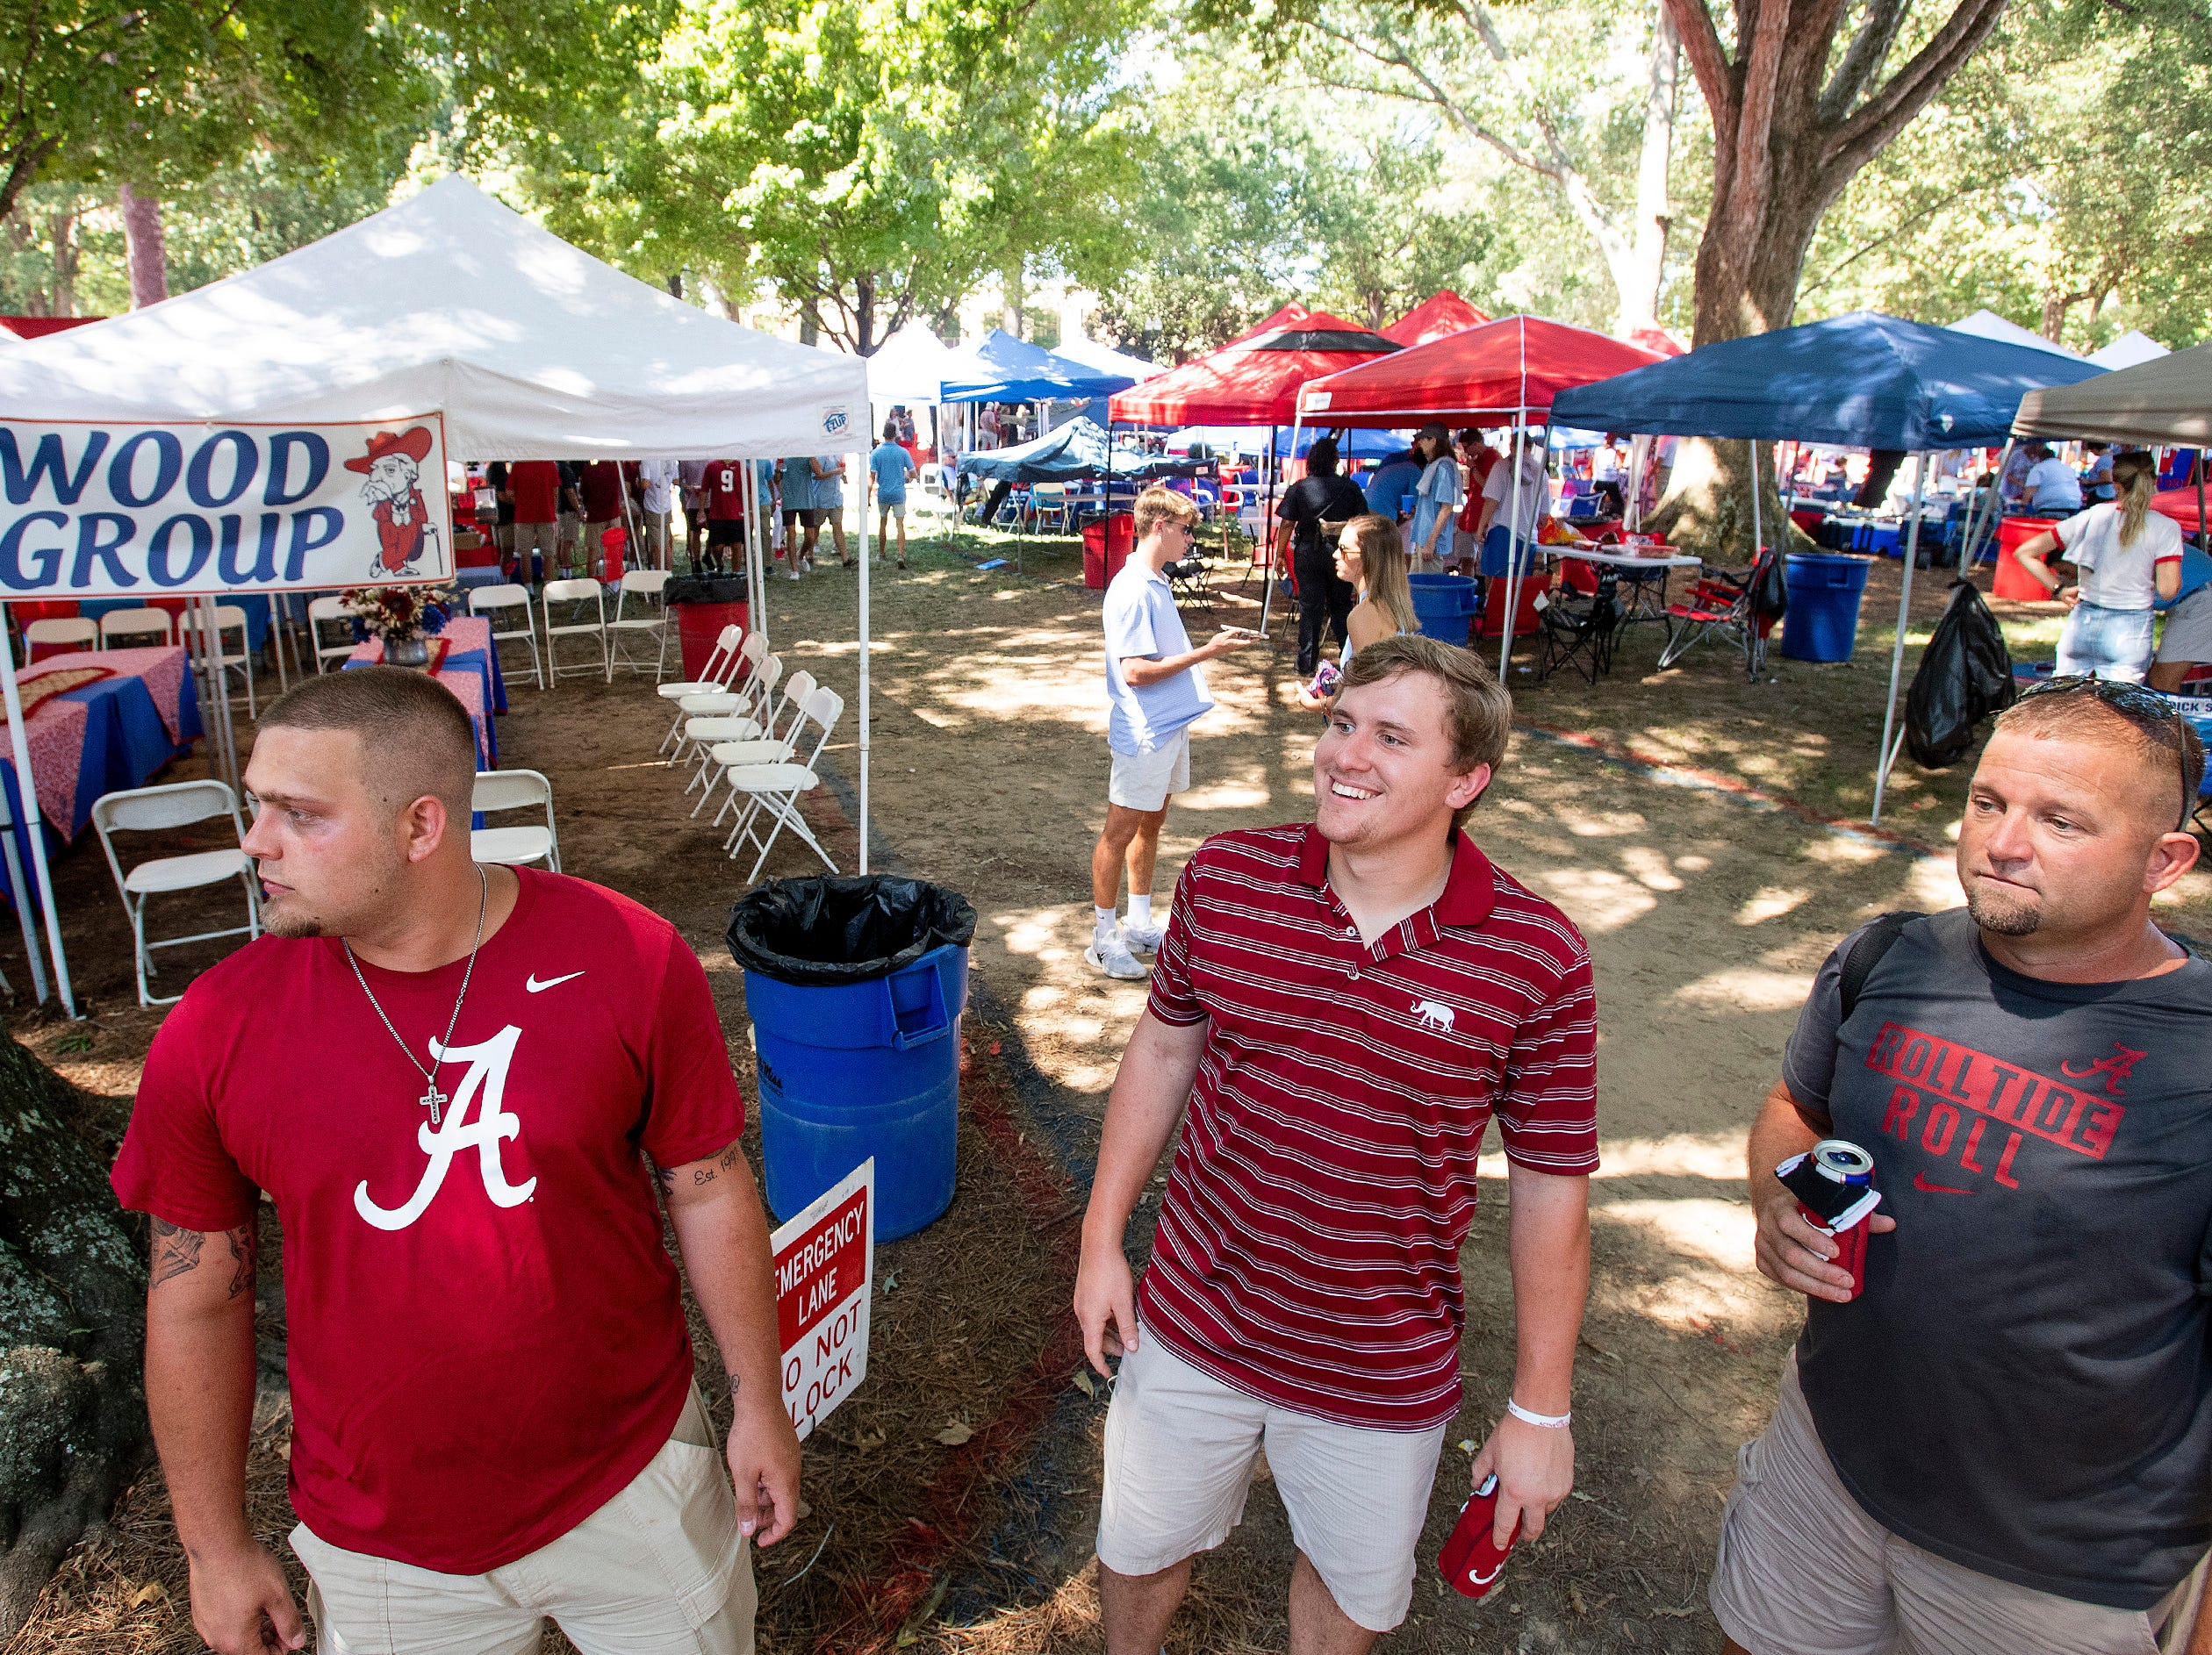 Alabama fans, from left, Chance Borden, Tyler Robb and Steven Borden make their way through the Grove before the Alabama vs. Ole Miss game on the Ole Miss campus in Oxford, Ms., on Saturday September 15, 2018.